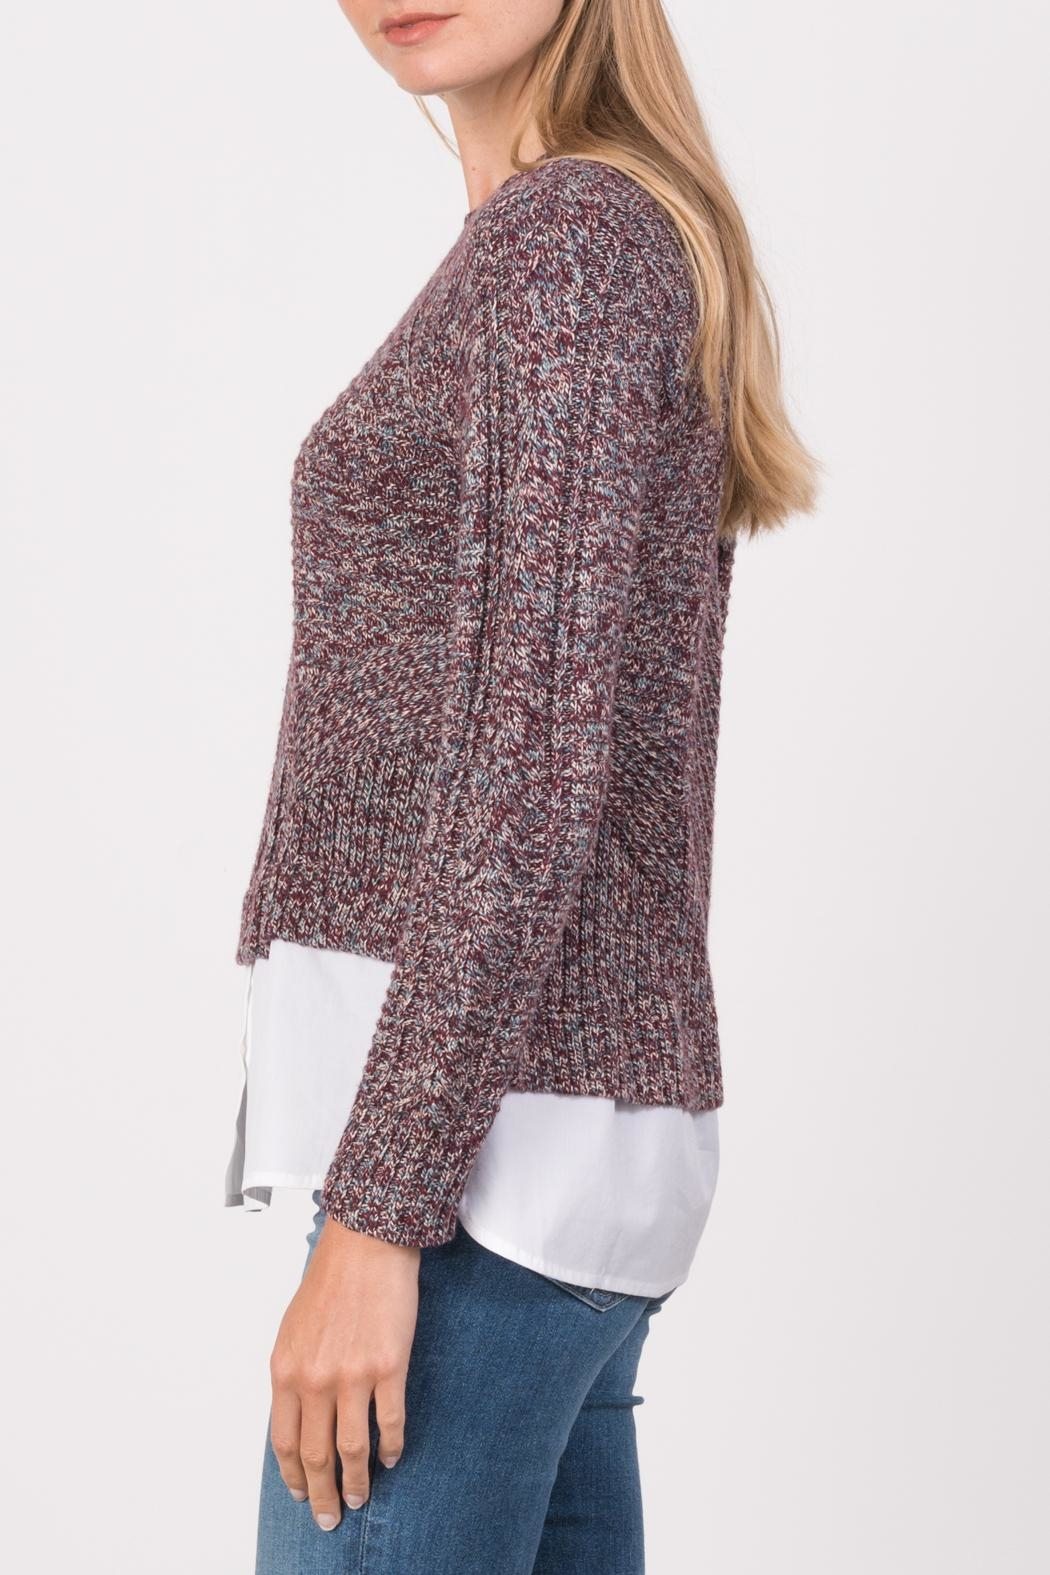 Margaret O'Leary Christina Pullover - Front Full Image